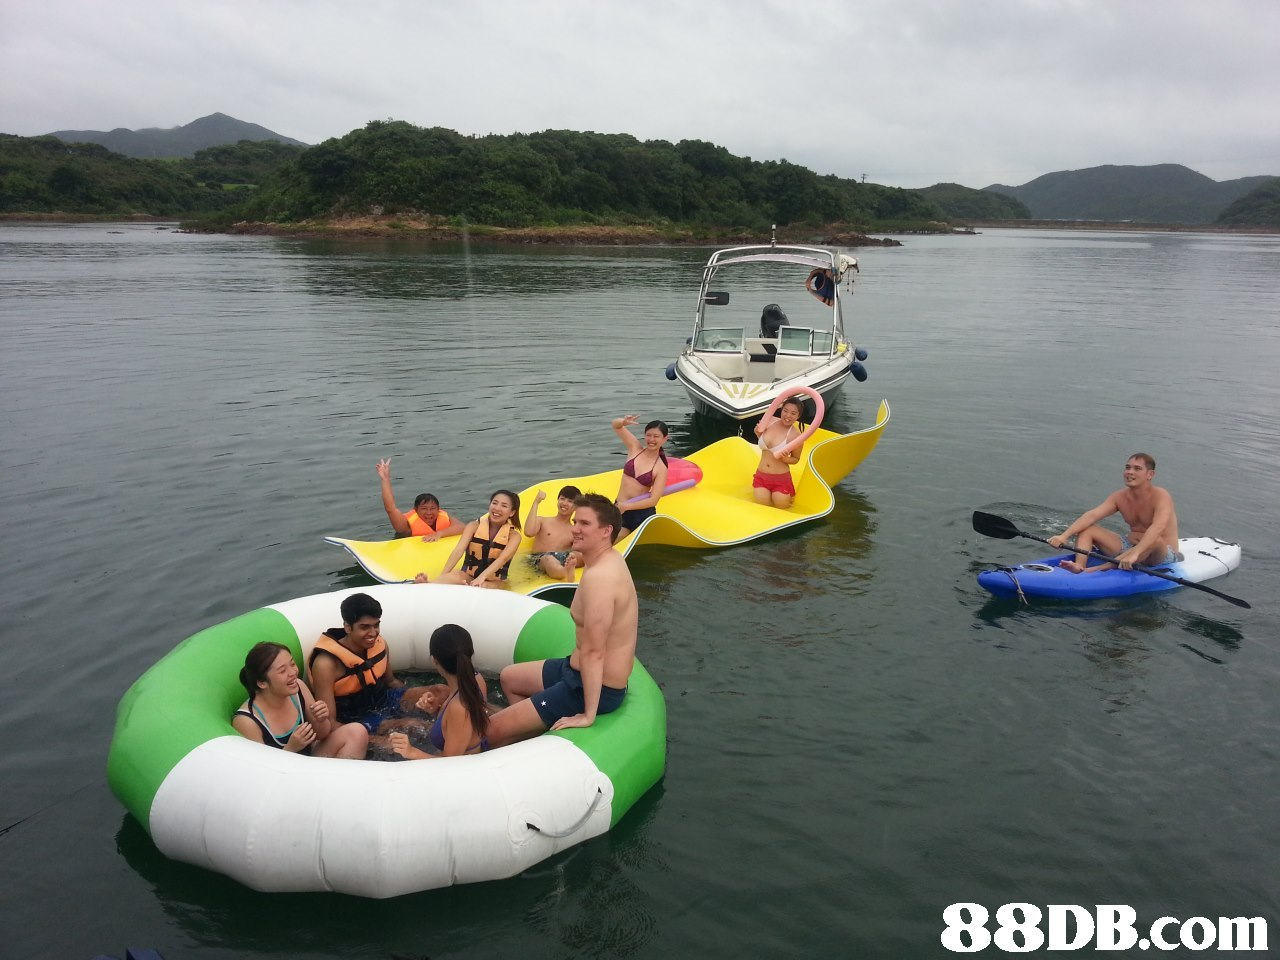 C.   Water transportation,Tubing,Vehicle,Recreation,Boating